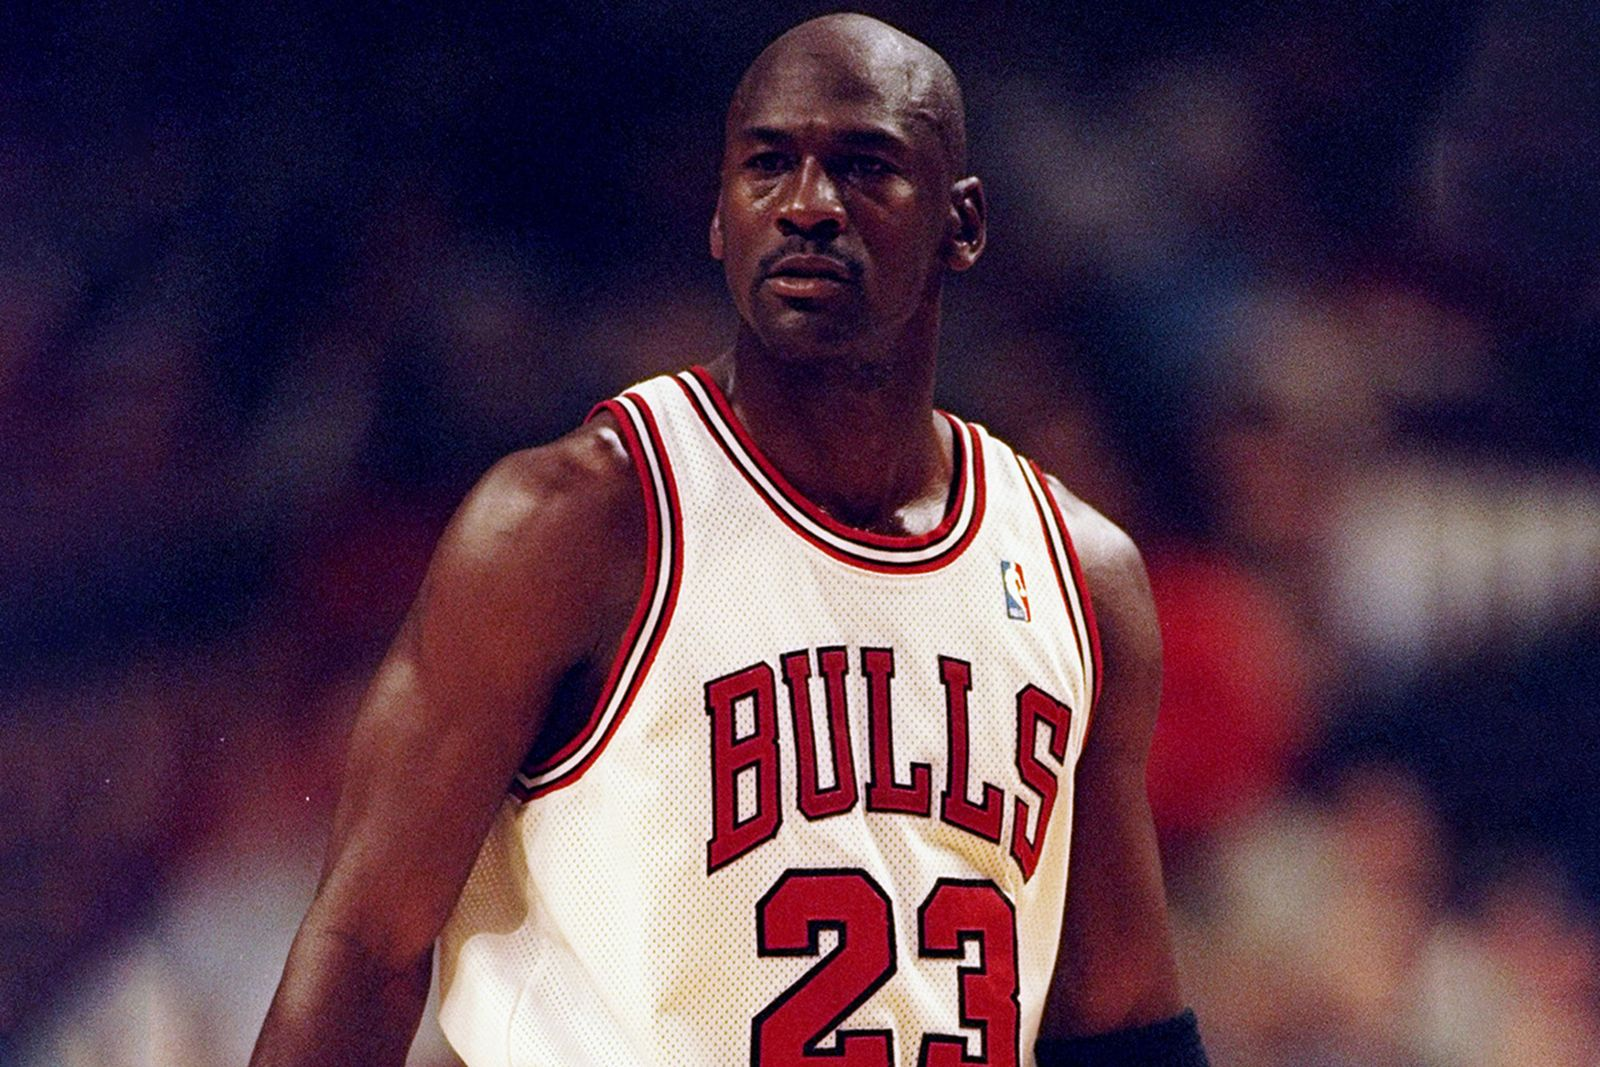 Michael Jordan of the Chicago Bulls looks on during a game against the San Antonio Spurs